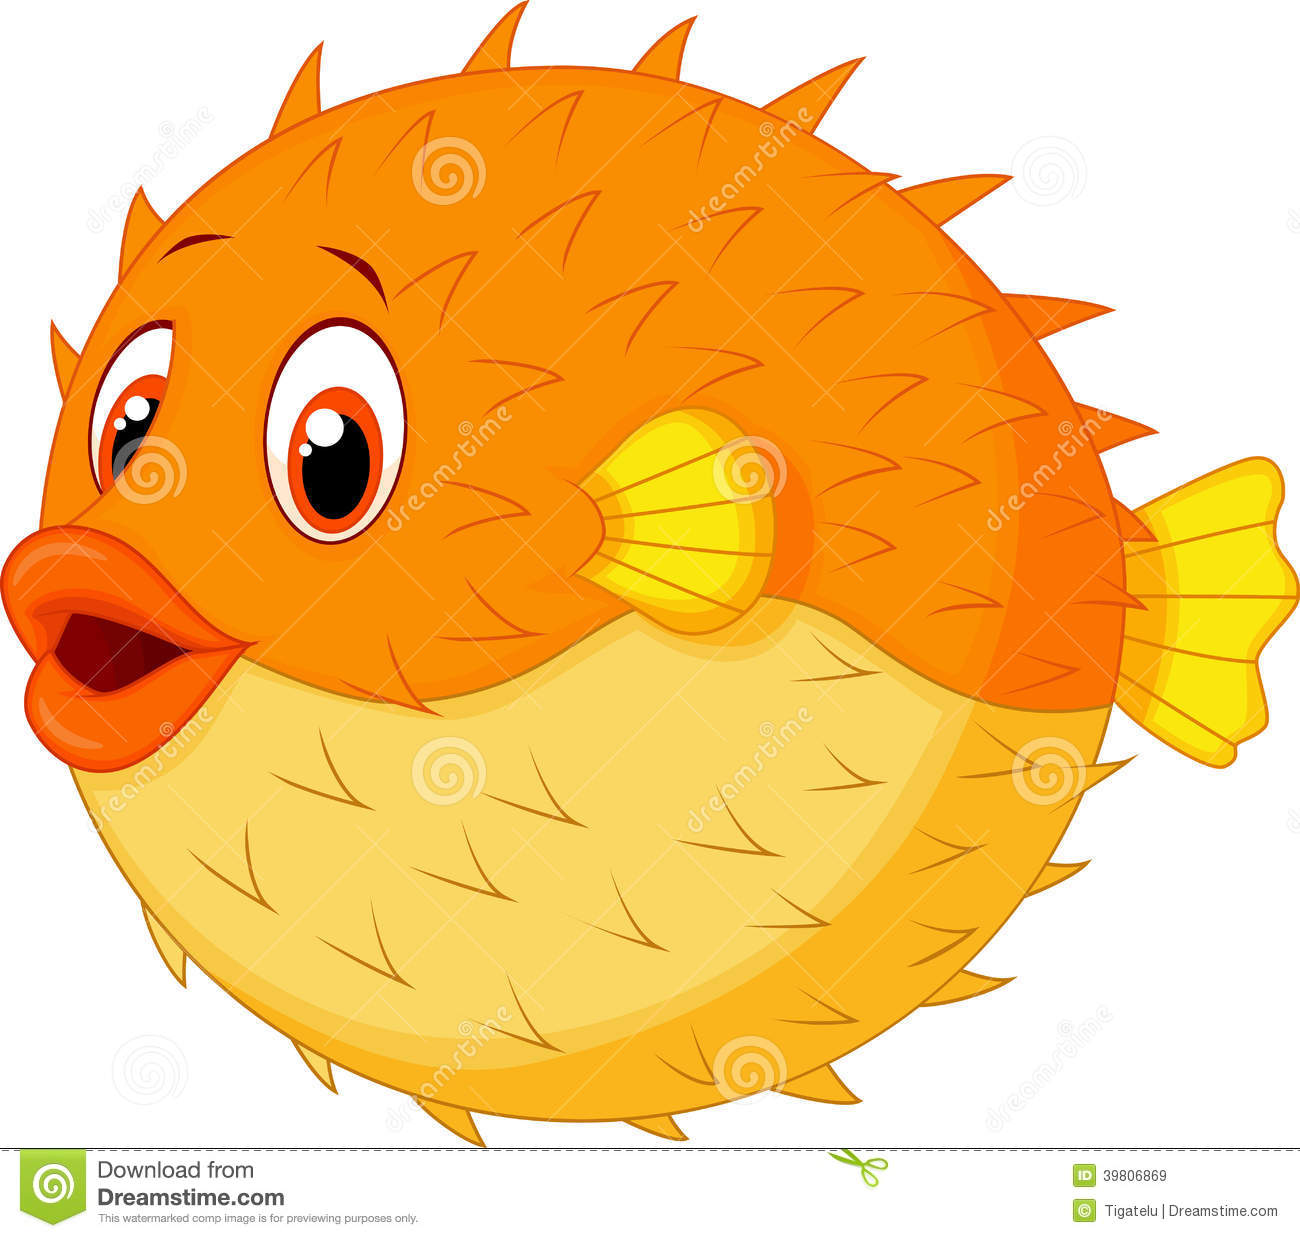 Cartoon goldfish illustration royalty free stock photo image - Cute Puffer Fish Cartoon Royalty Free Stock Images